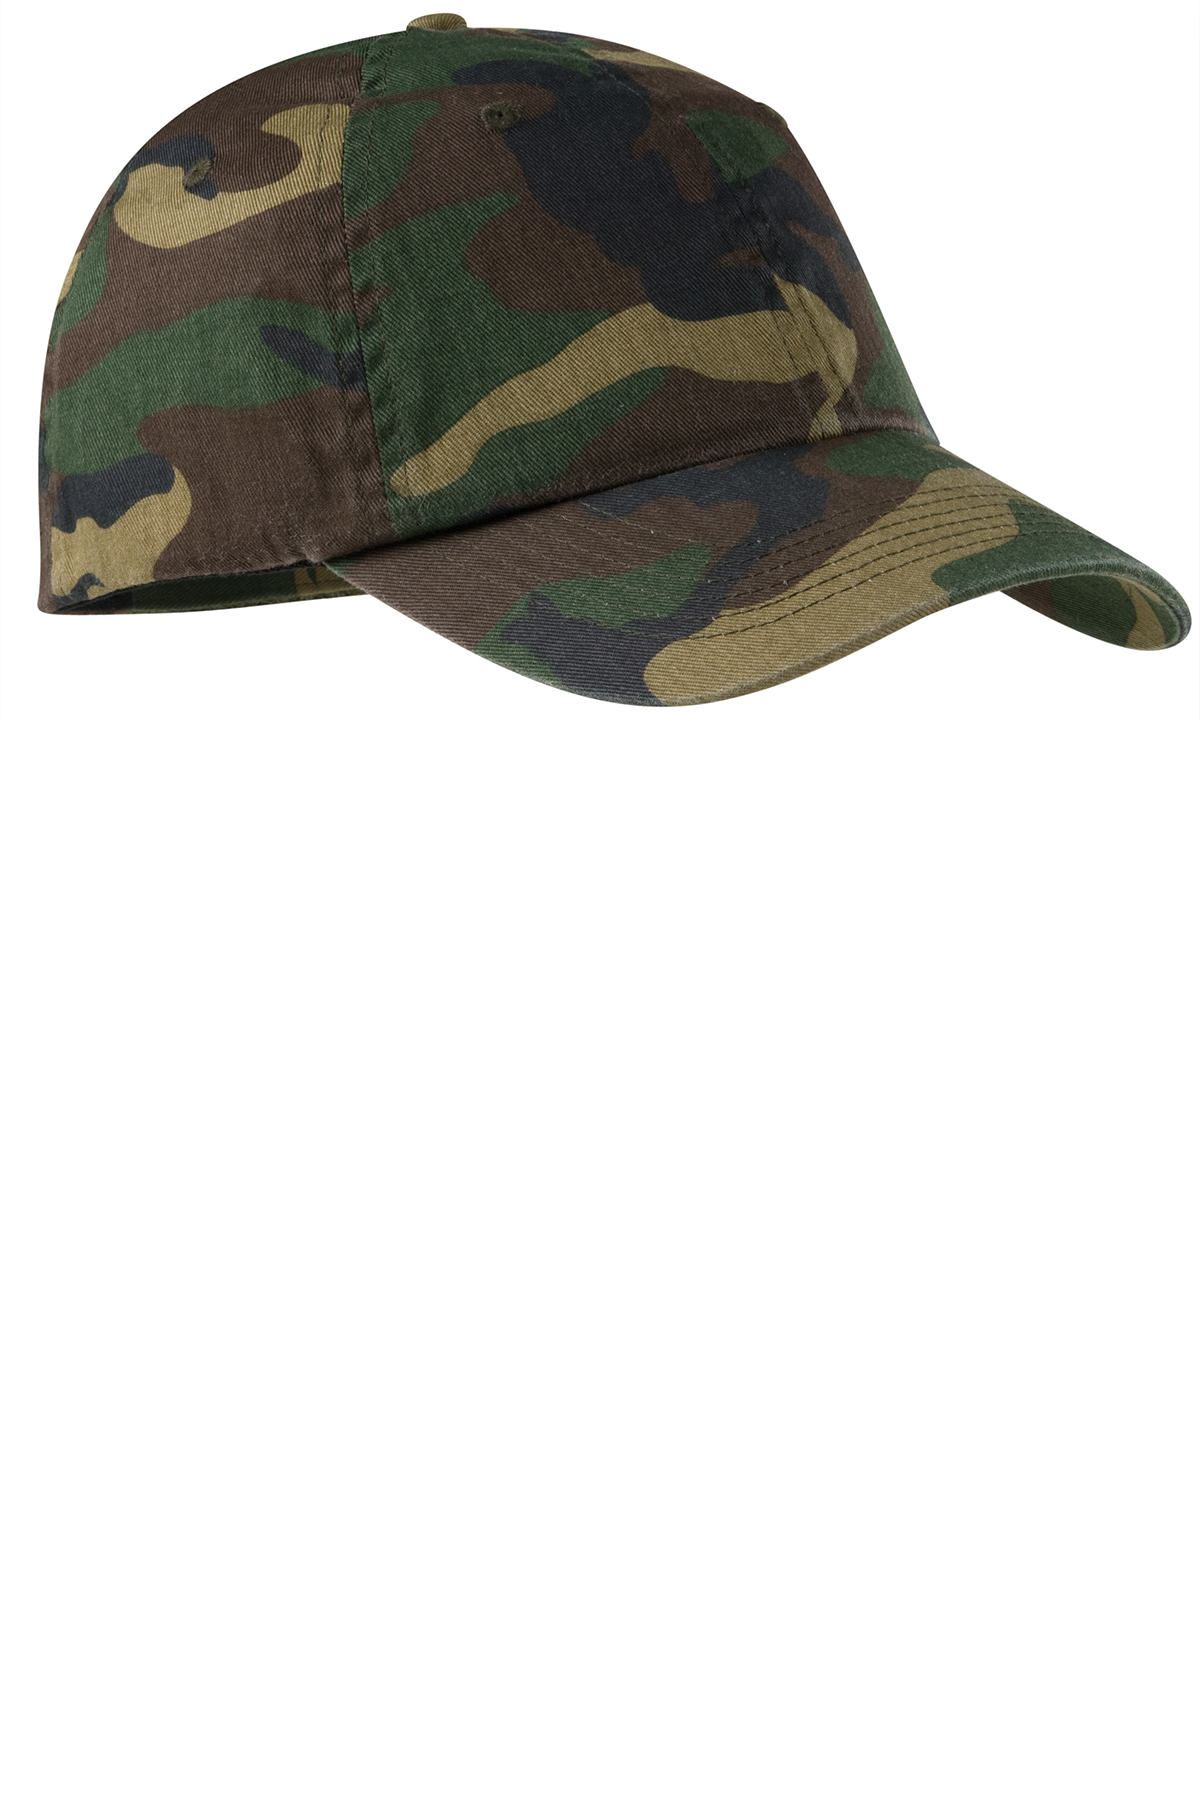 a5a84f3c75e C901 Compare. Port Authority Camouflage Fleece Beanie. Call for pricing.  Delete. Port Authority sup   174 ...